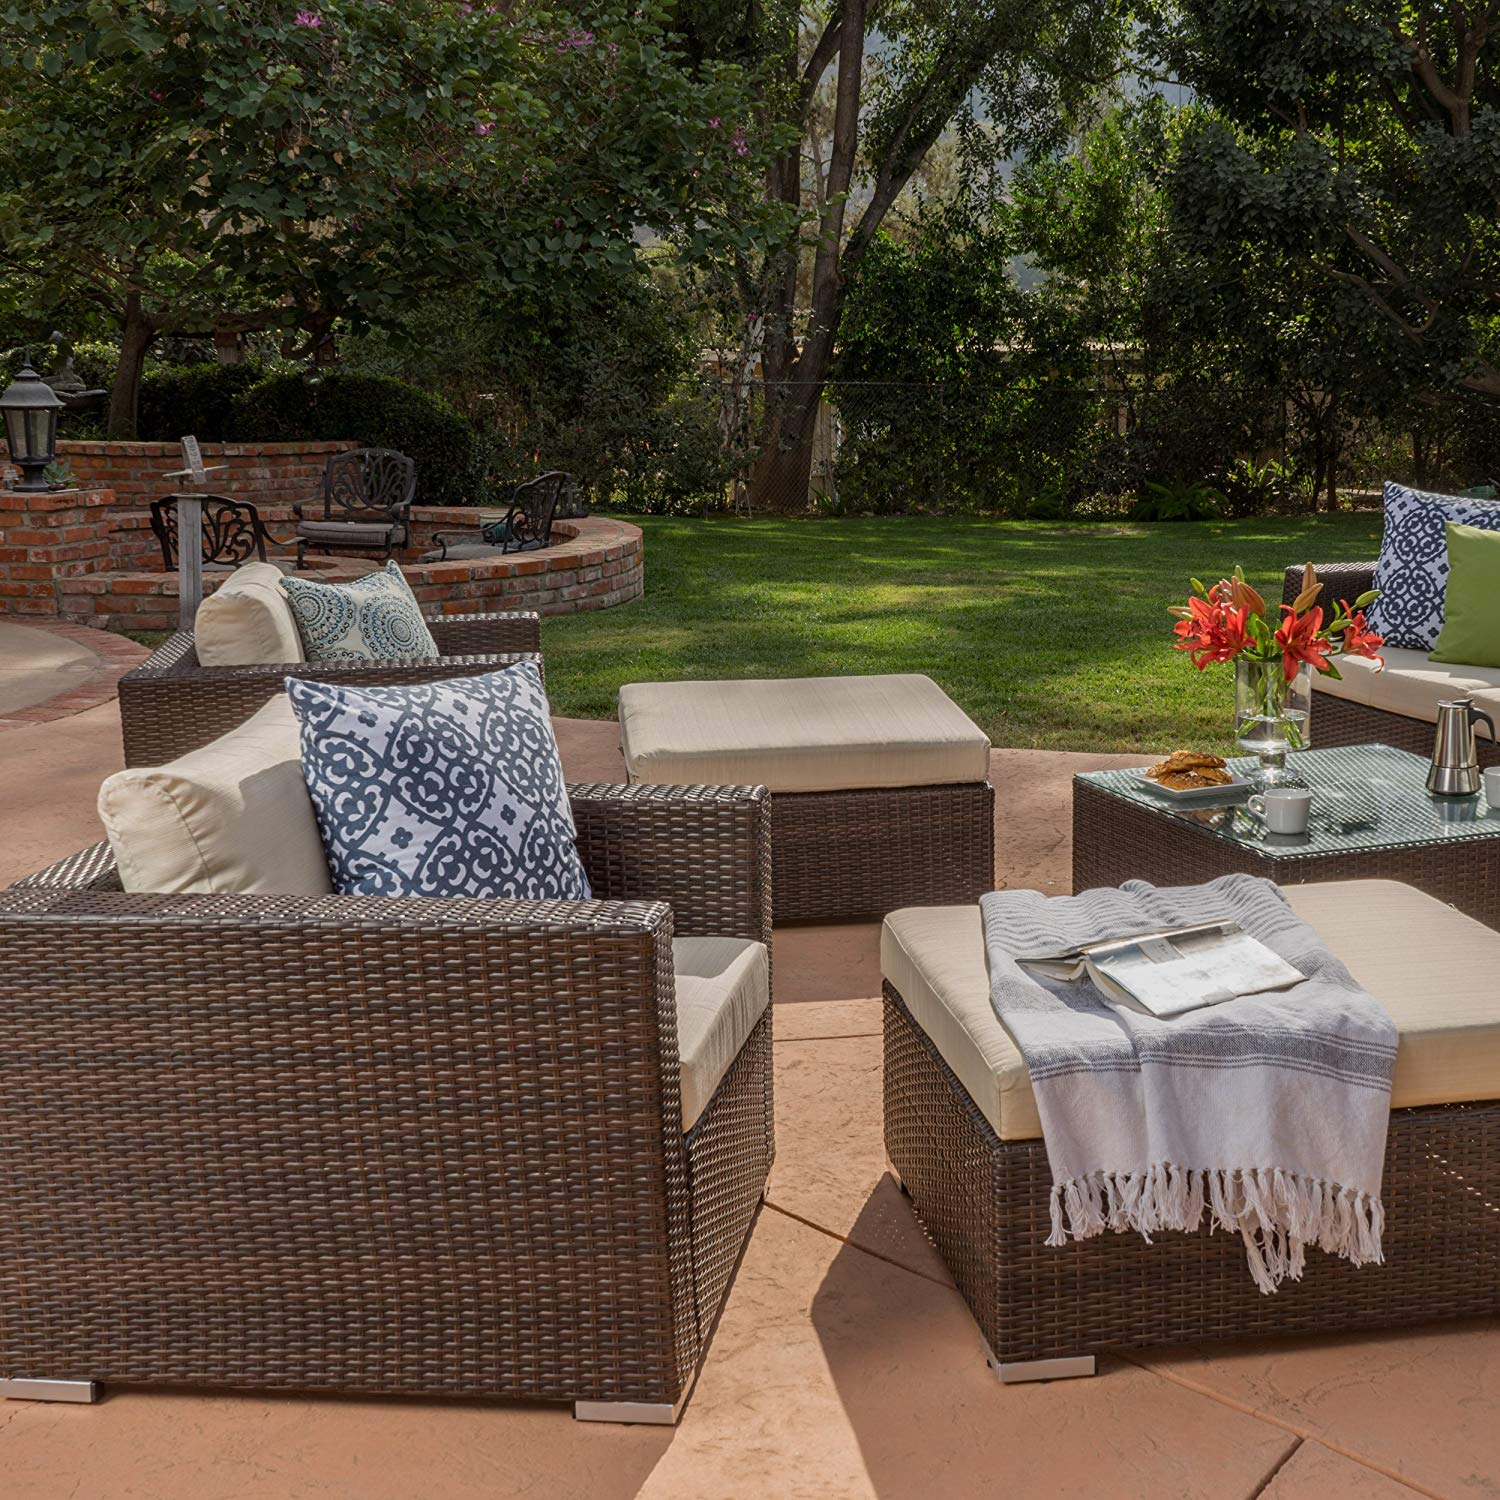 Outdoor Wicker Furniture Sectional Sofa Set